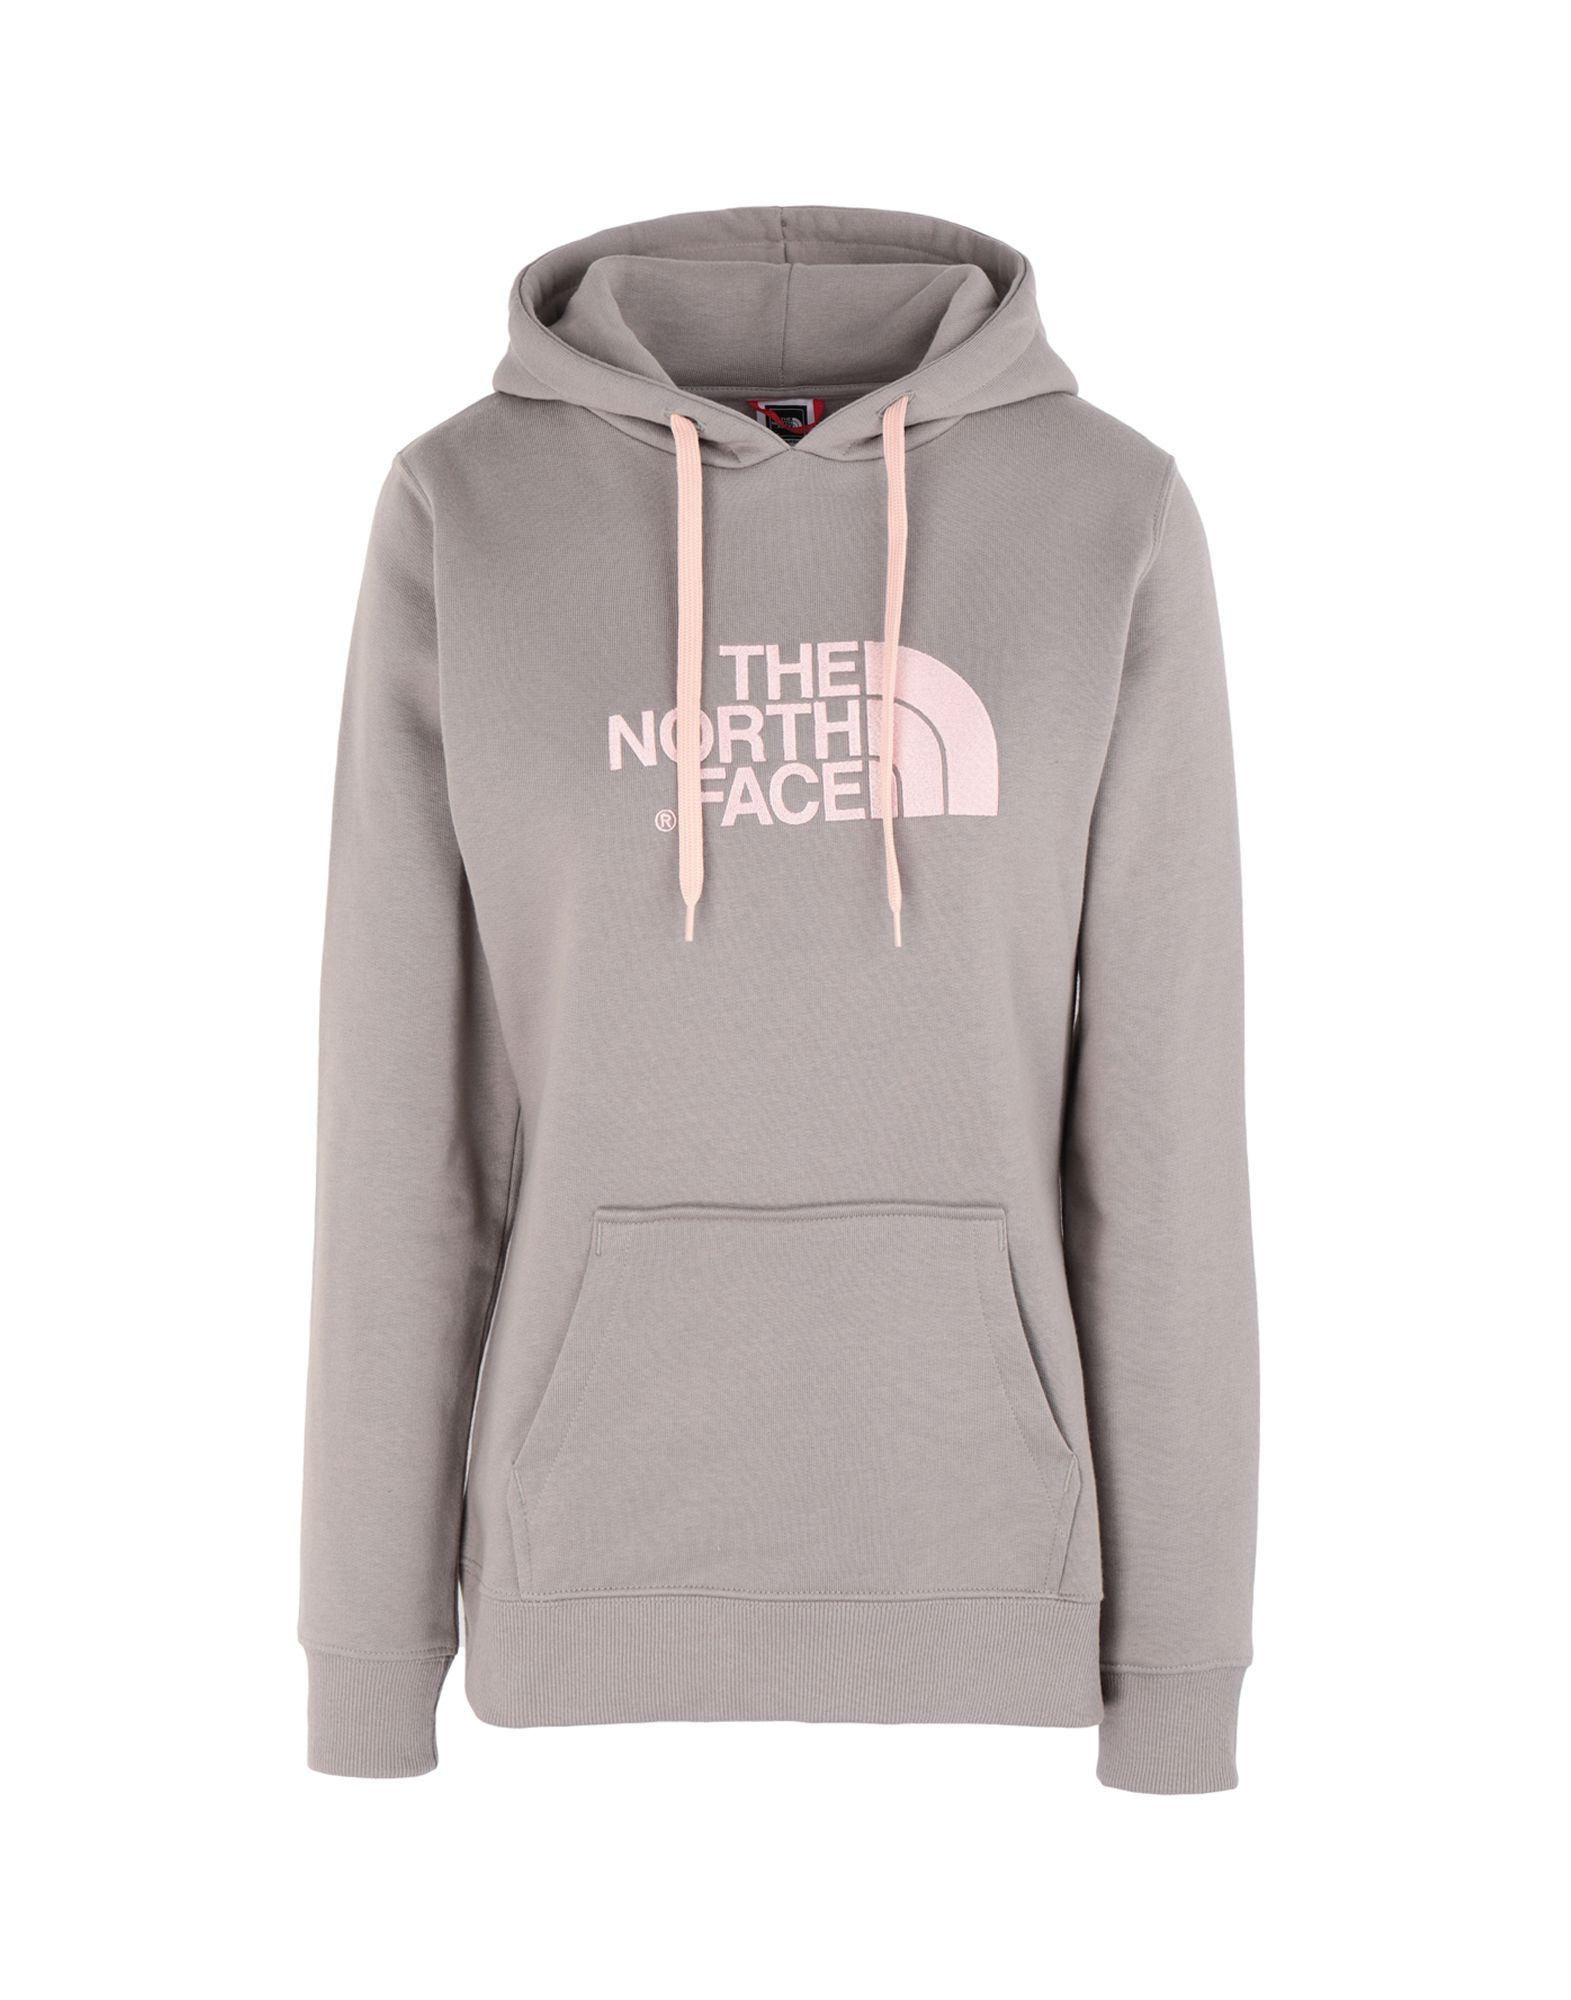 38c74487117 The North Face Femme - The North Face Sport - YOOX